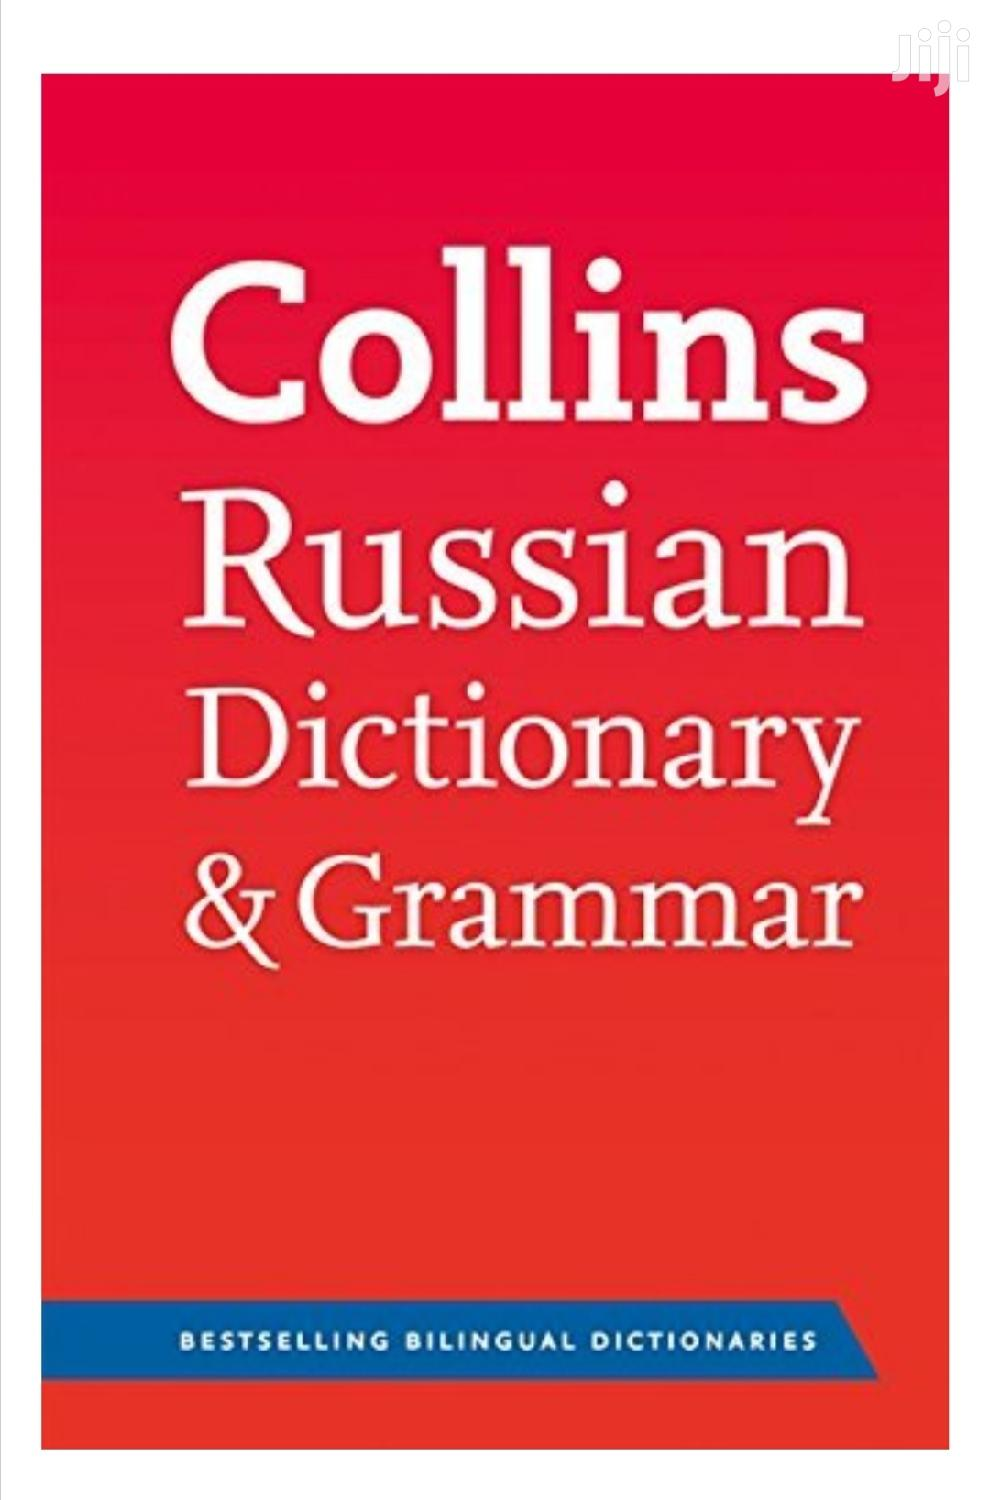 Collins Russian Dictionary and Grammar | Books & Games for sale in Kampala, Central Region, Uganda